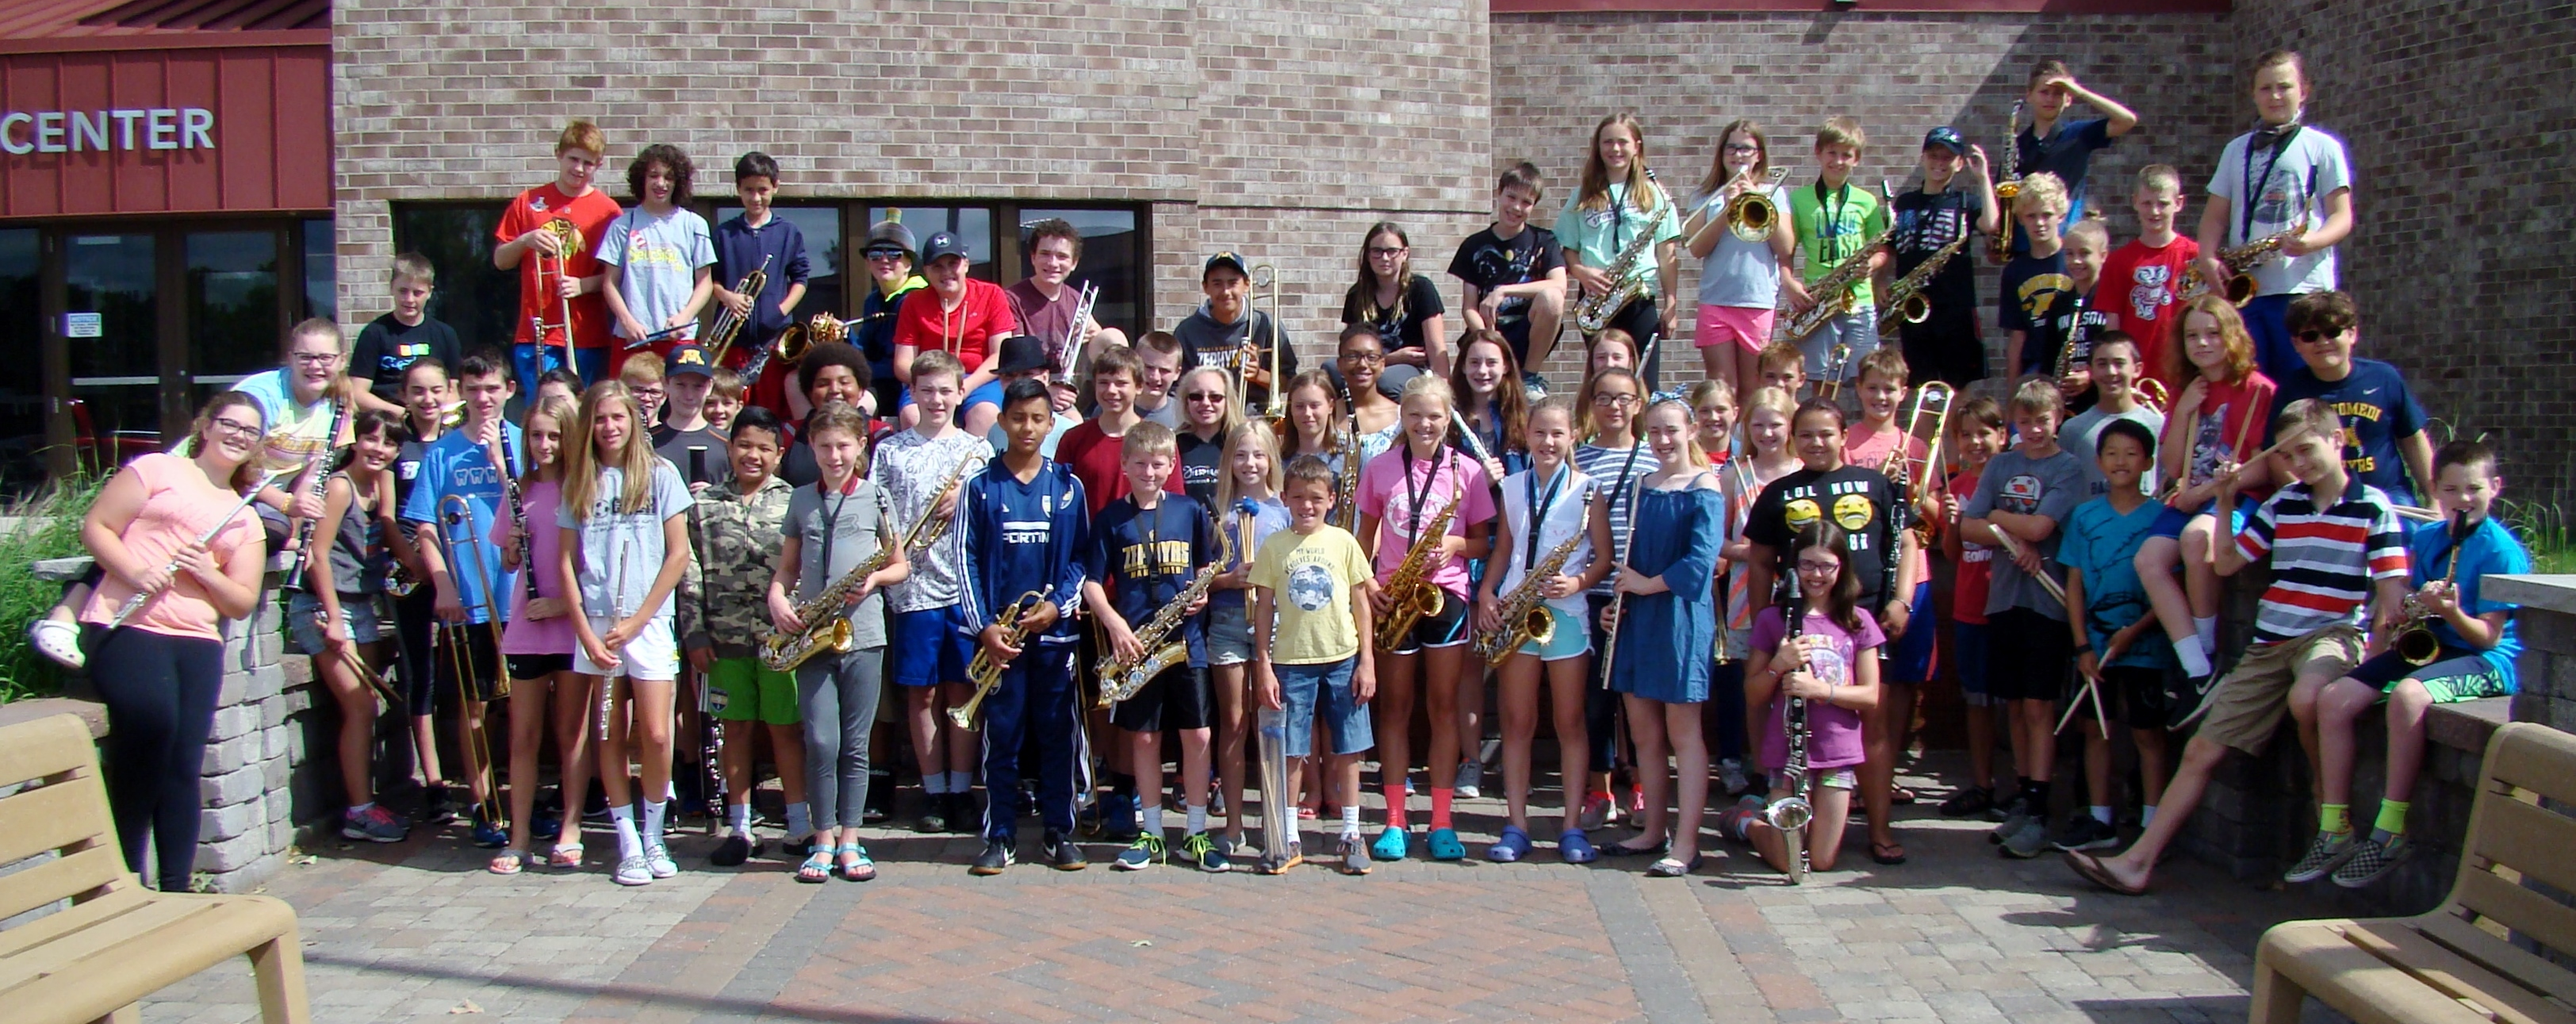 Summer Middle School Band